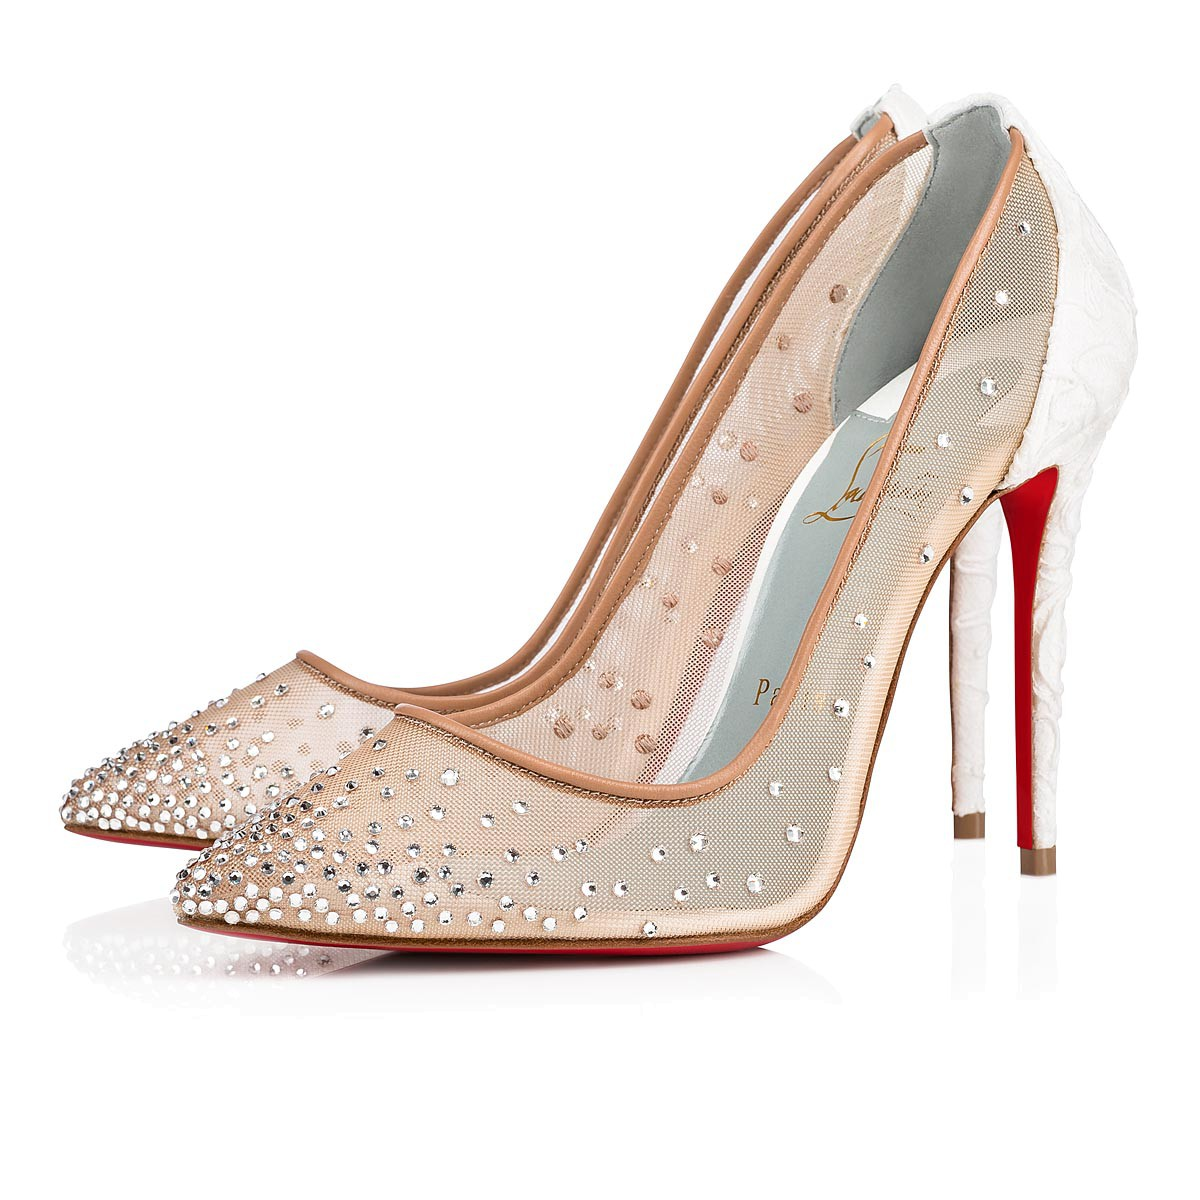 new concept 389e4 c4313 Follies Strass 100 Off White Dentelle Lace - Women Shoes - Christian  Louboutin